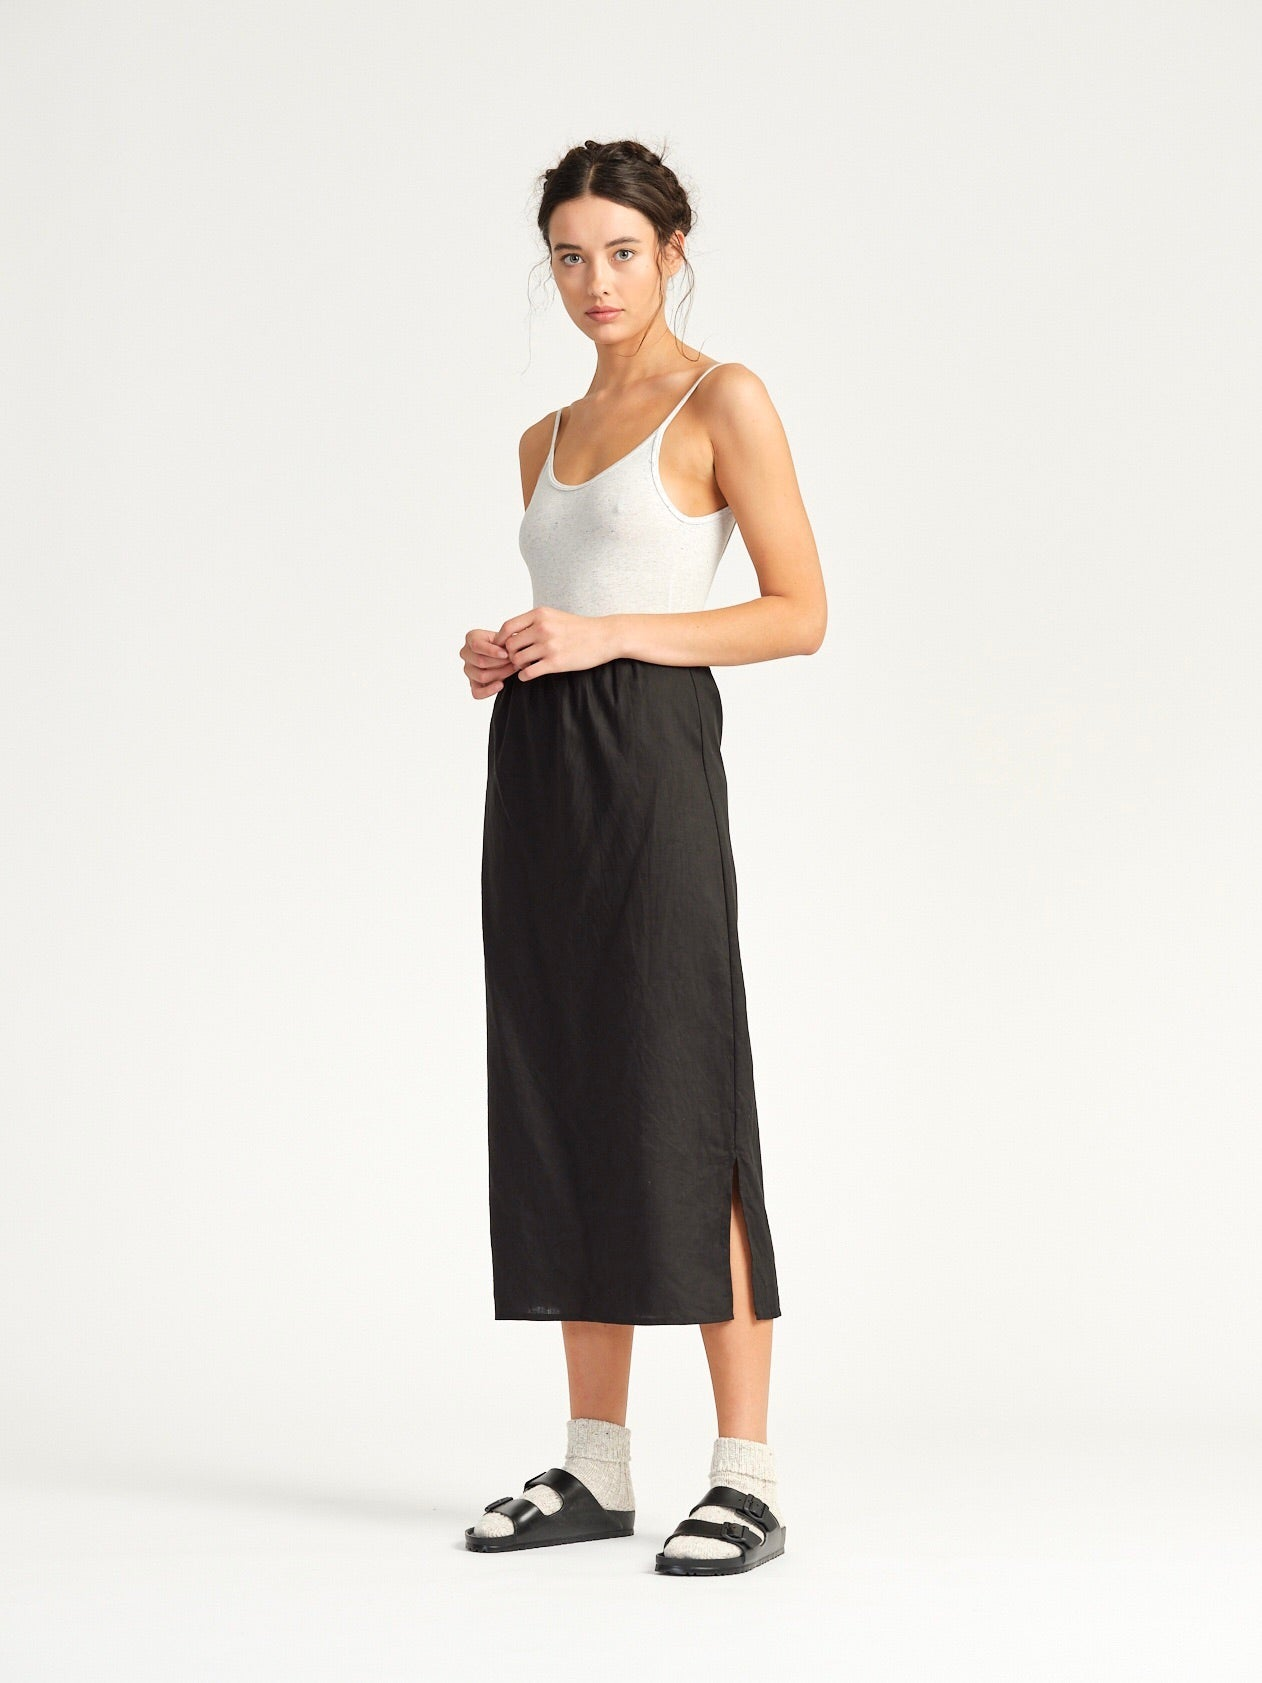 Shanghai Skirt - Black Linen